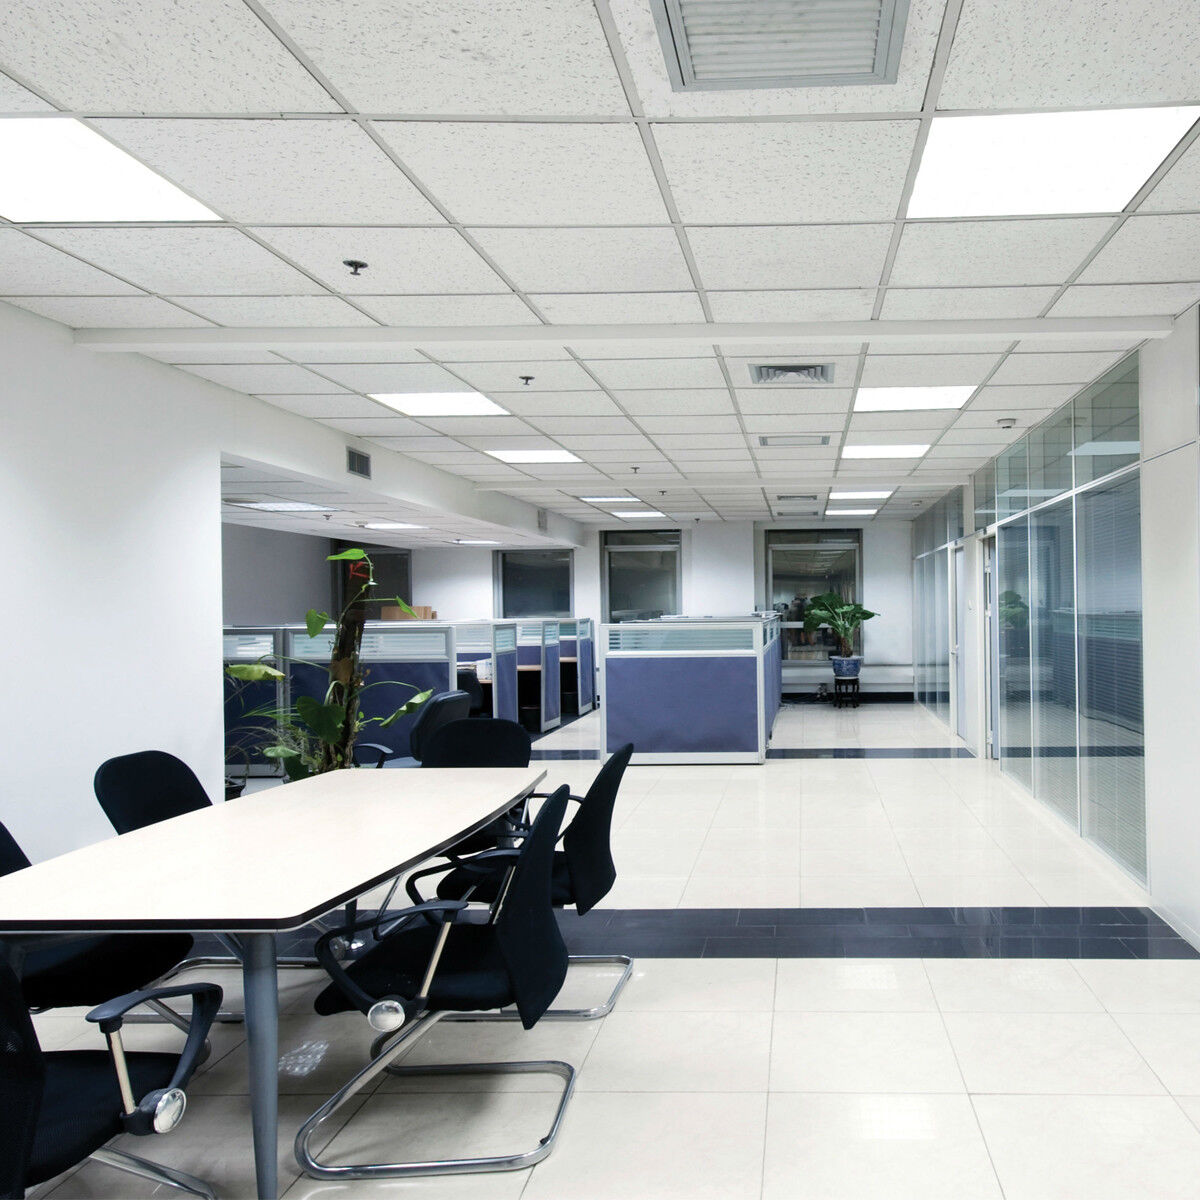 Office Lighting 48w Ceiling Suspended Recessed Led Panel White Light